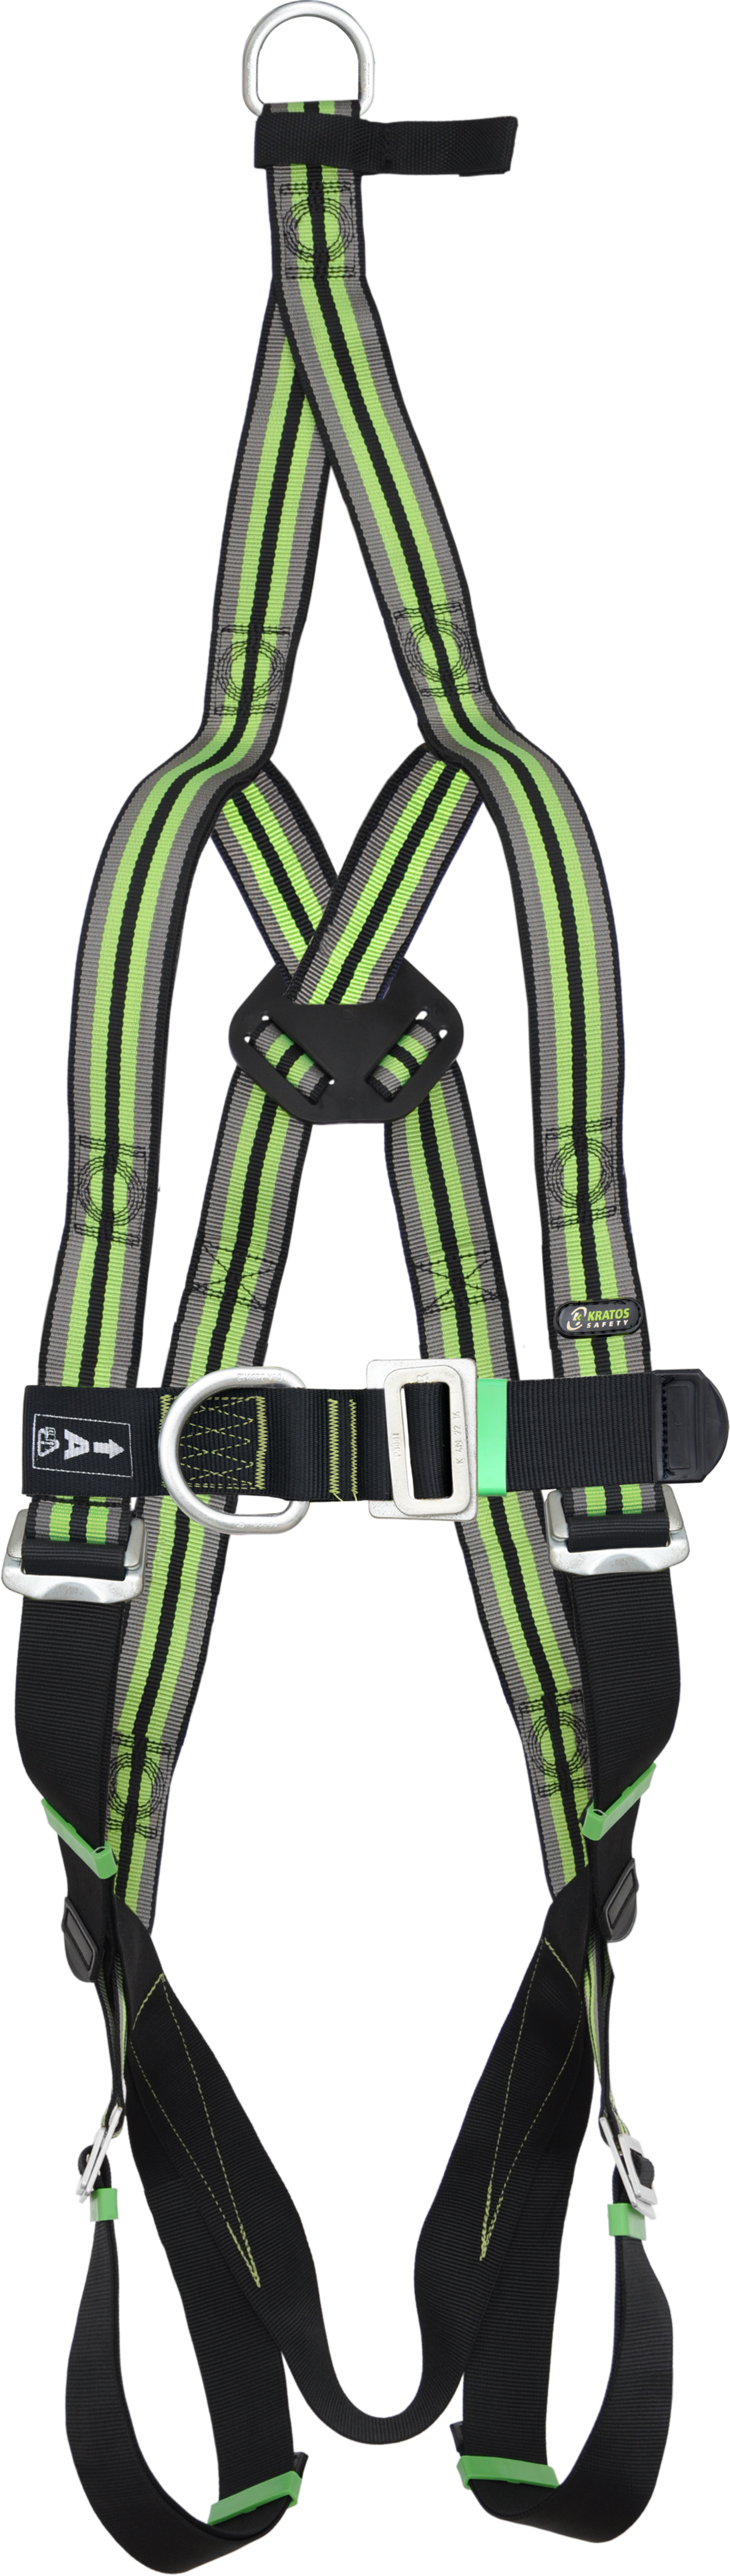 Body harness 2 attachment points with rescue strap